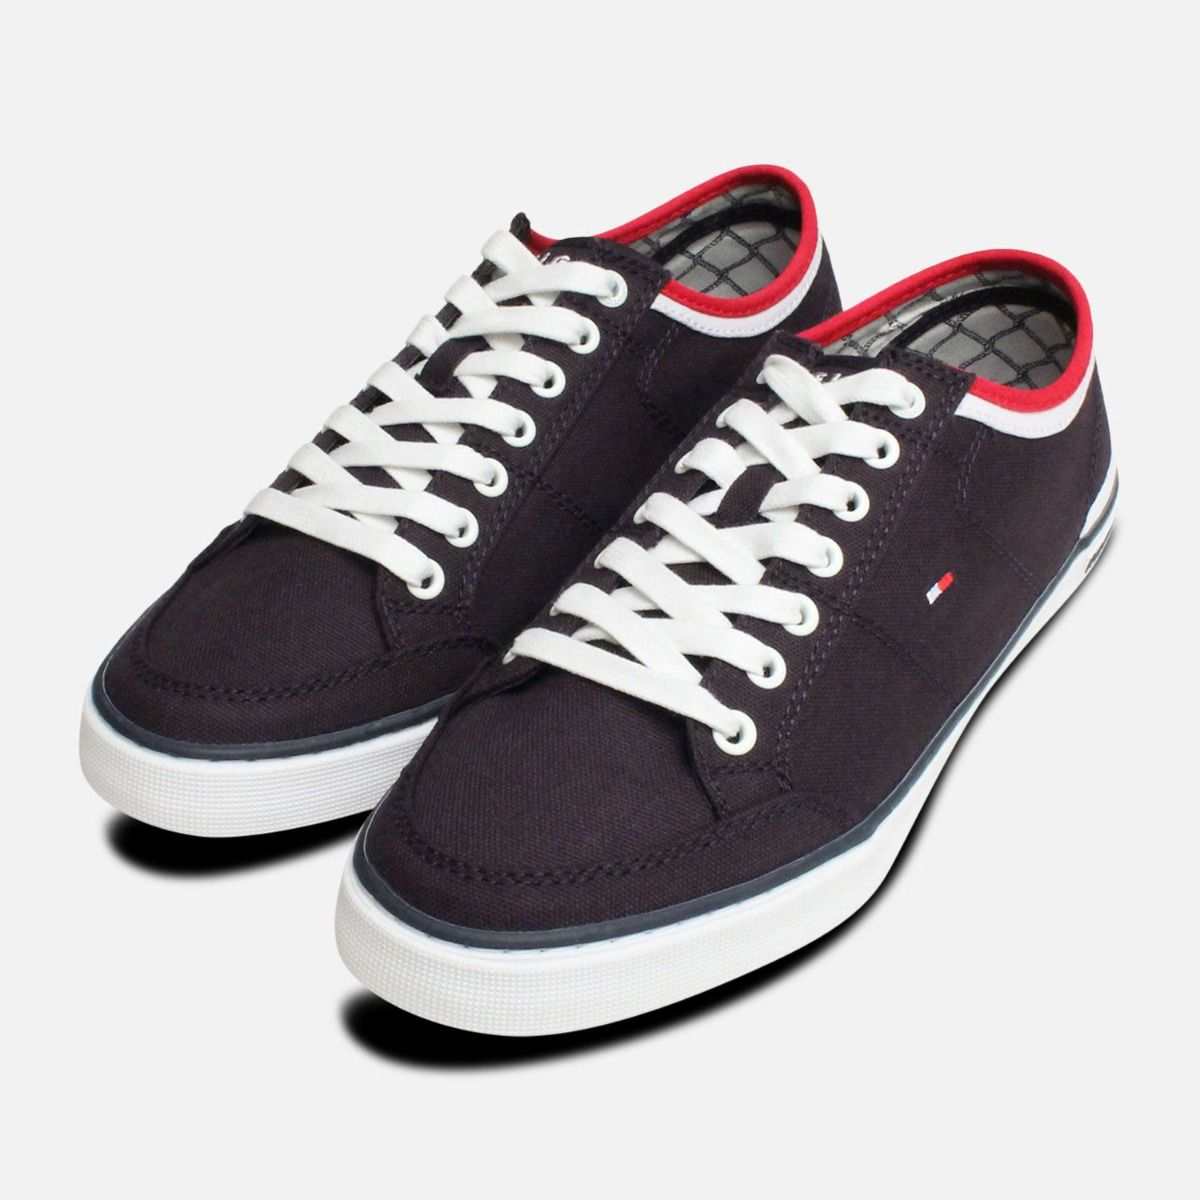 Shoes Tommy Hilfiger : Cheap Shoes For